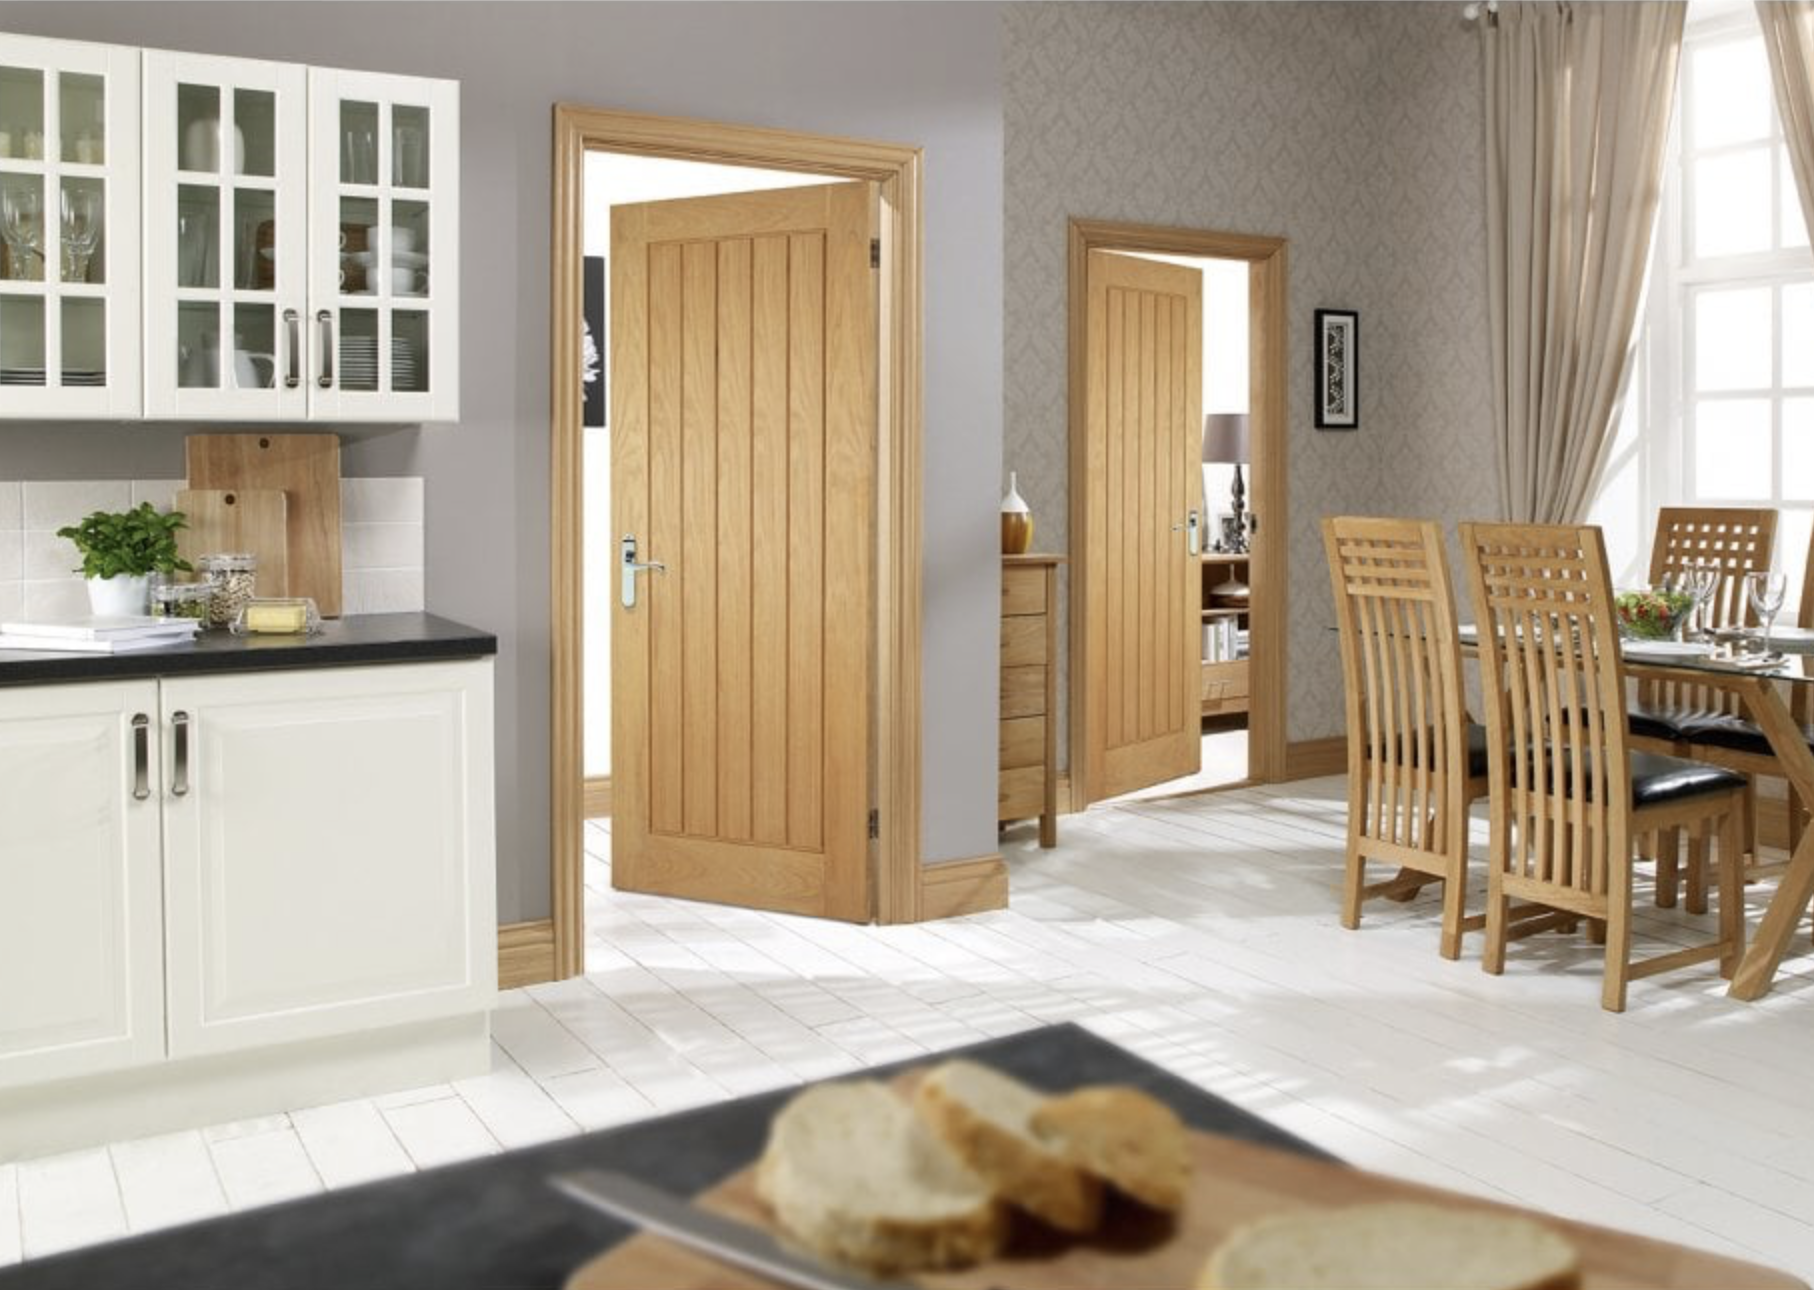 Oak Mexicano Internal Door, from £88, solid core, The Posh Door Co